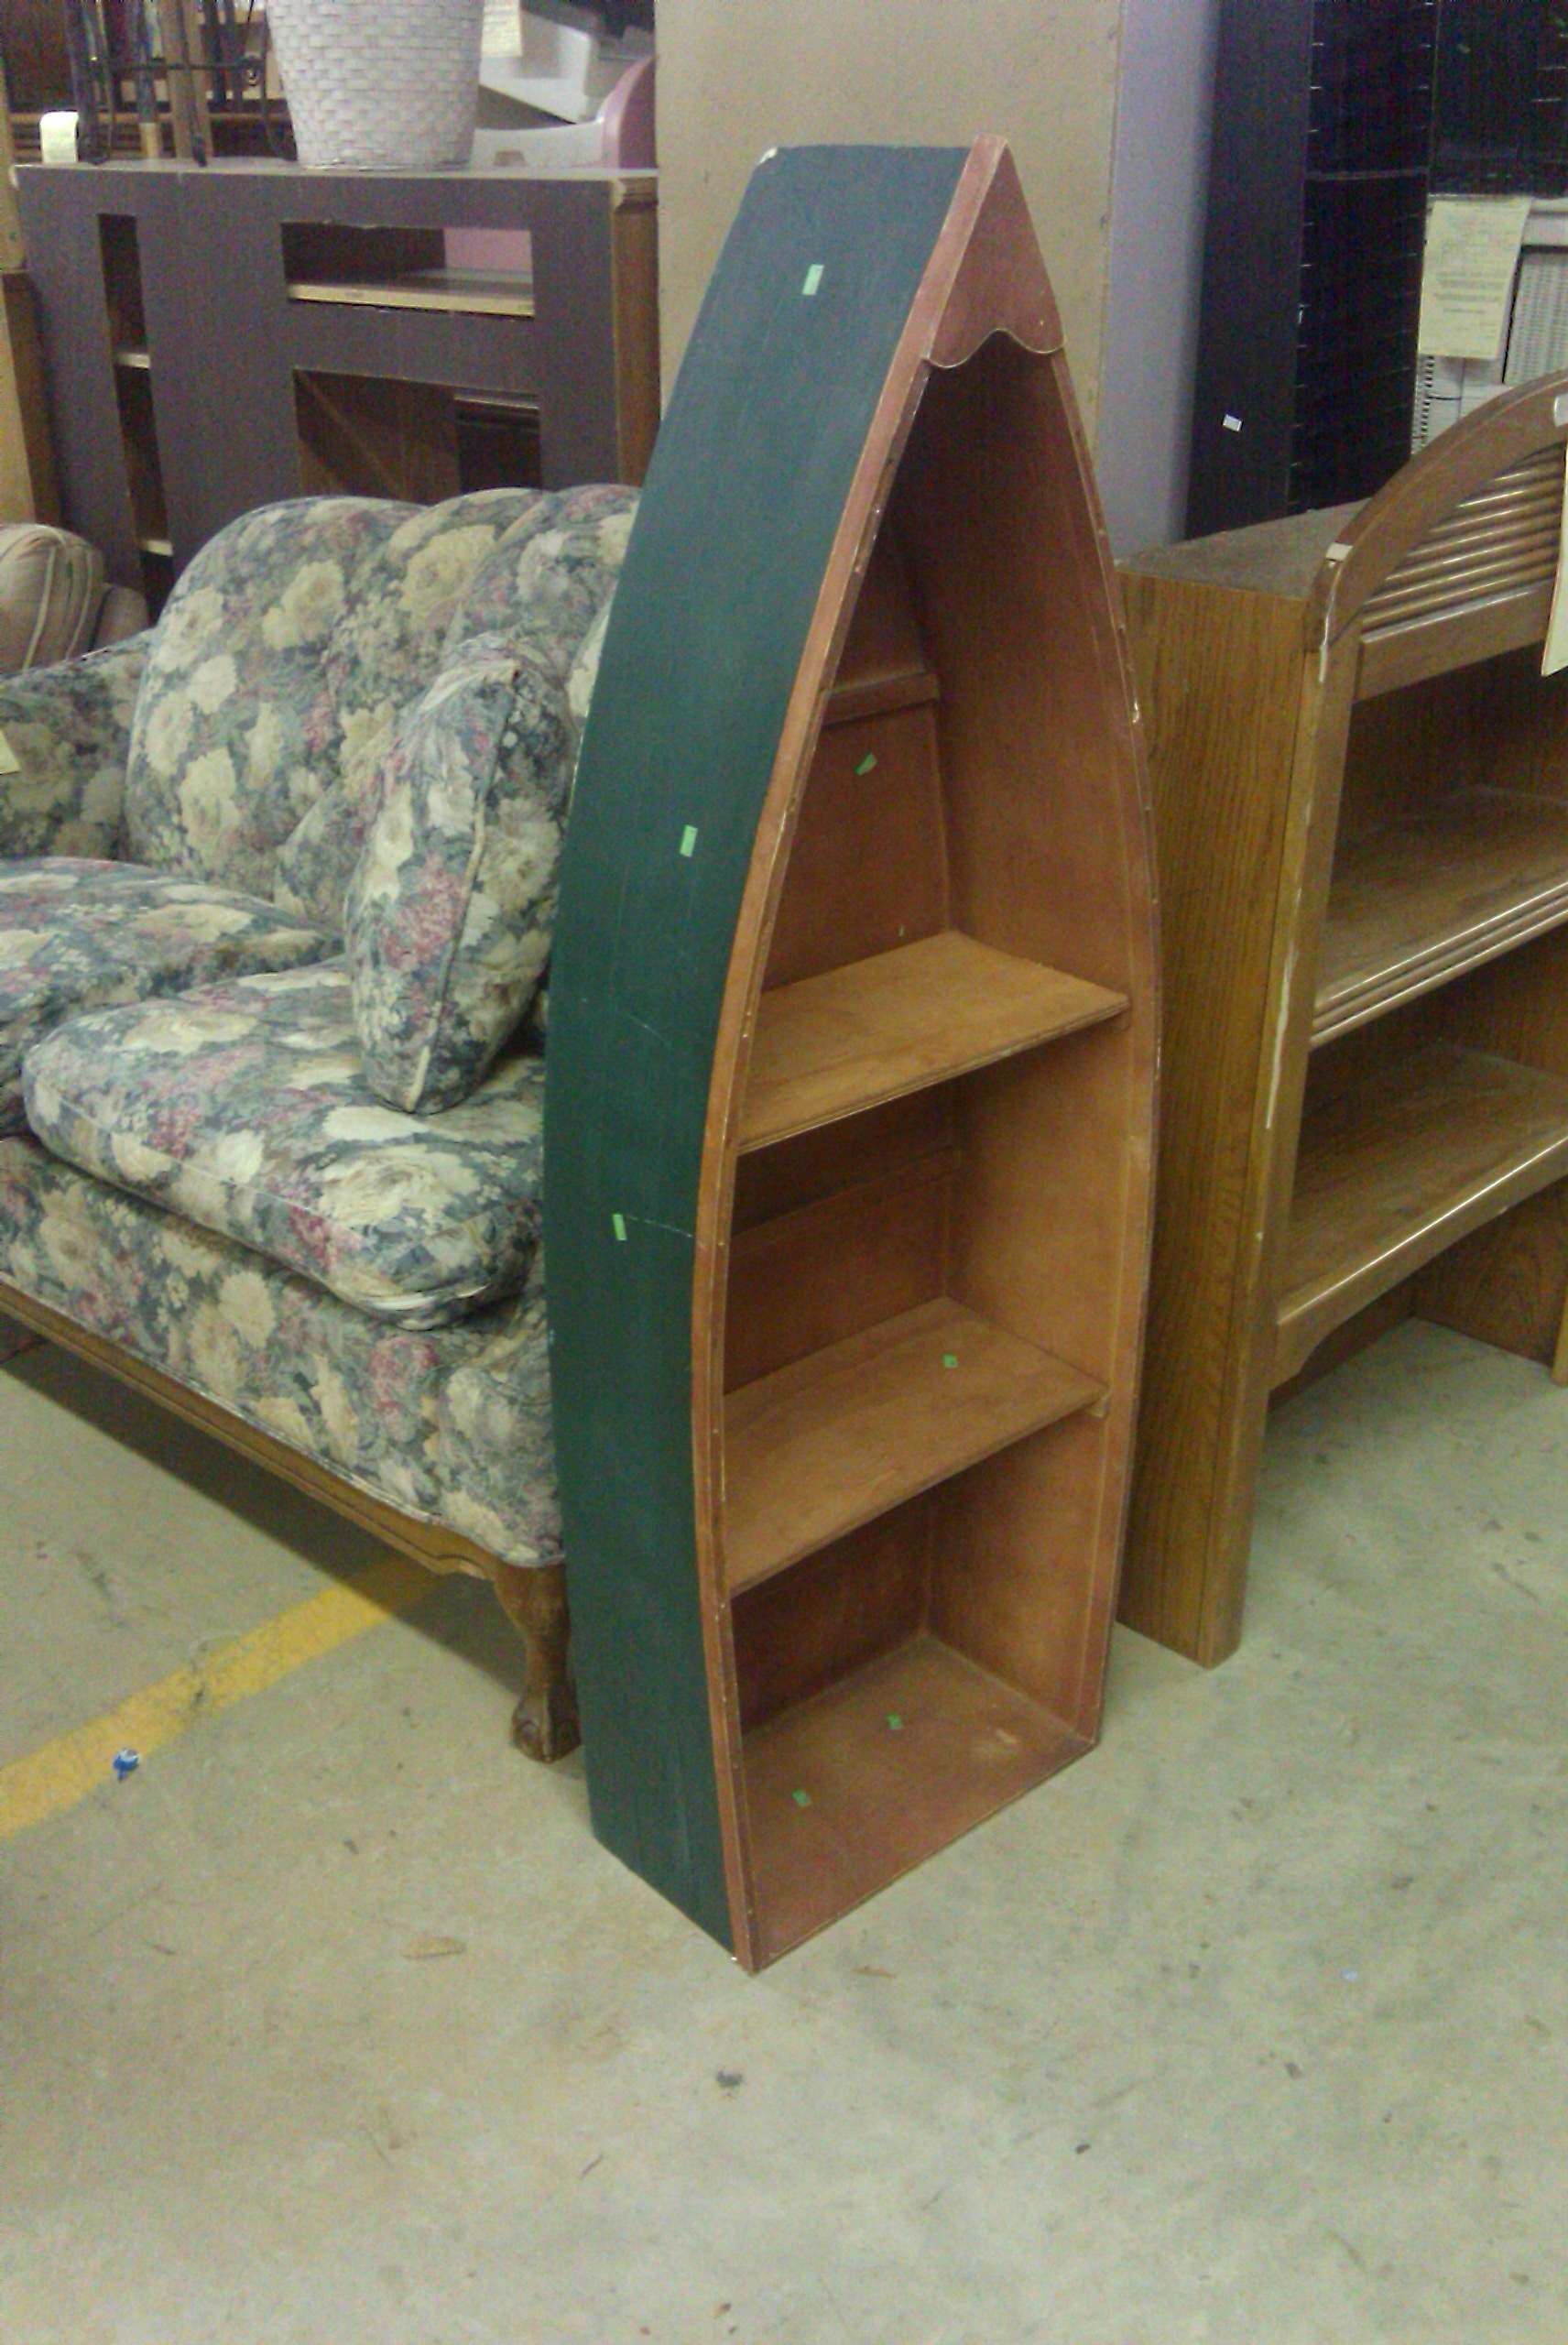 Boat Shaped Bookcases Within Well Known 59 Boat Shaped Shelf, Handmade Wooden Nicknack Shelf Shaped Like A (View 9 of 15)